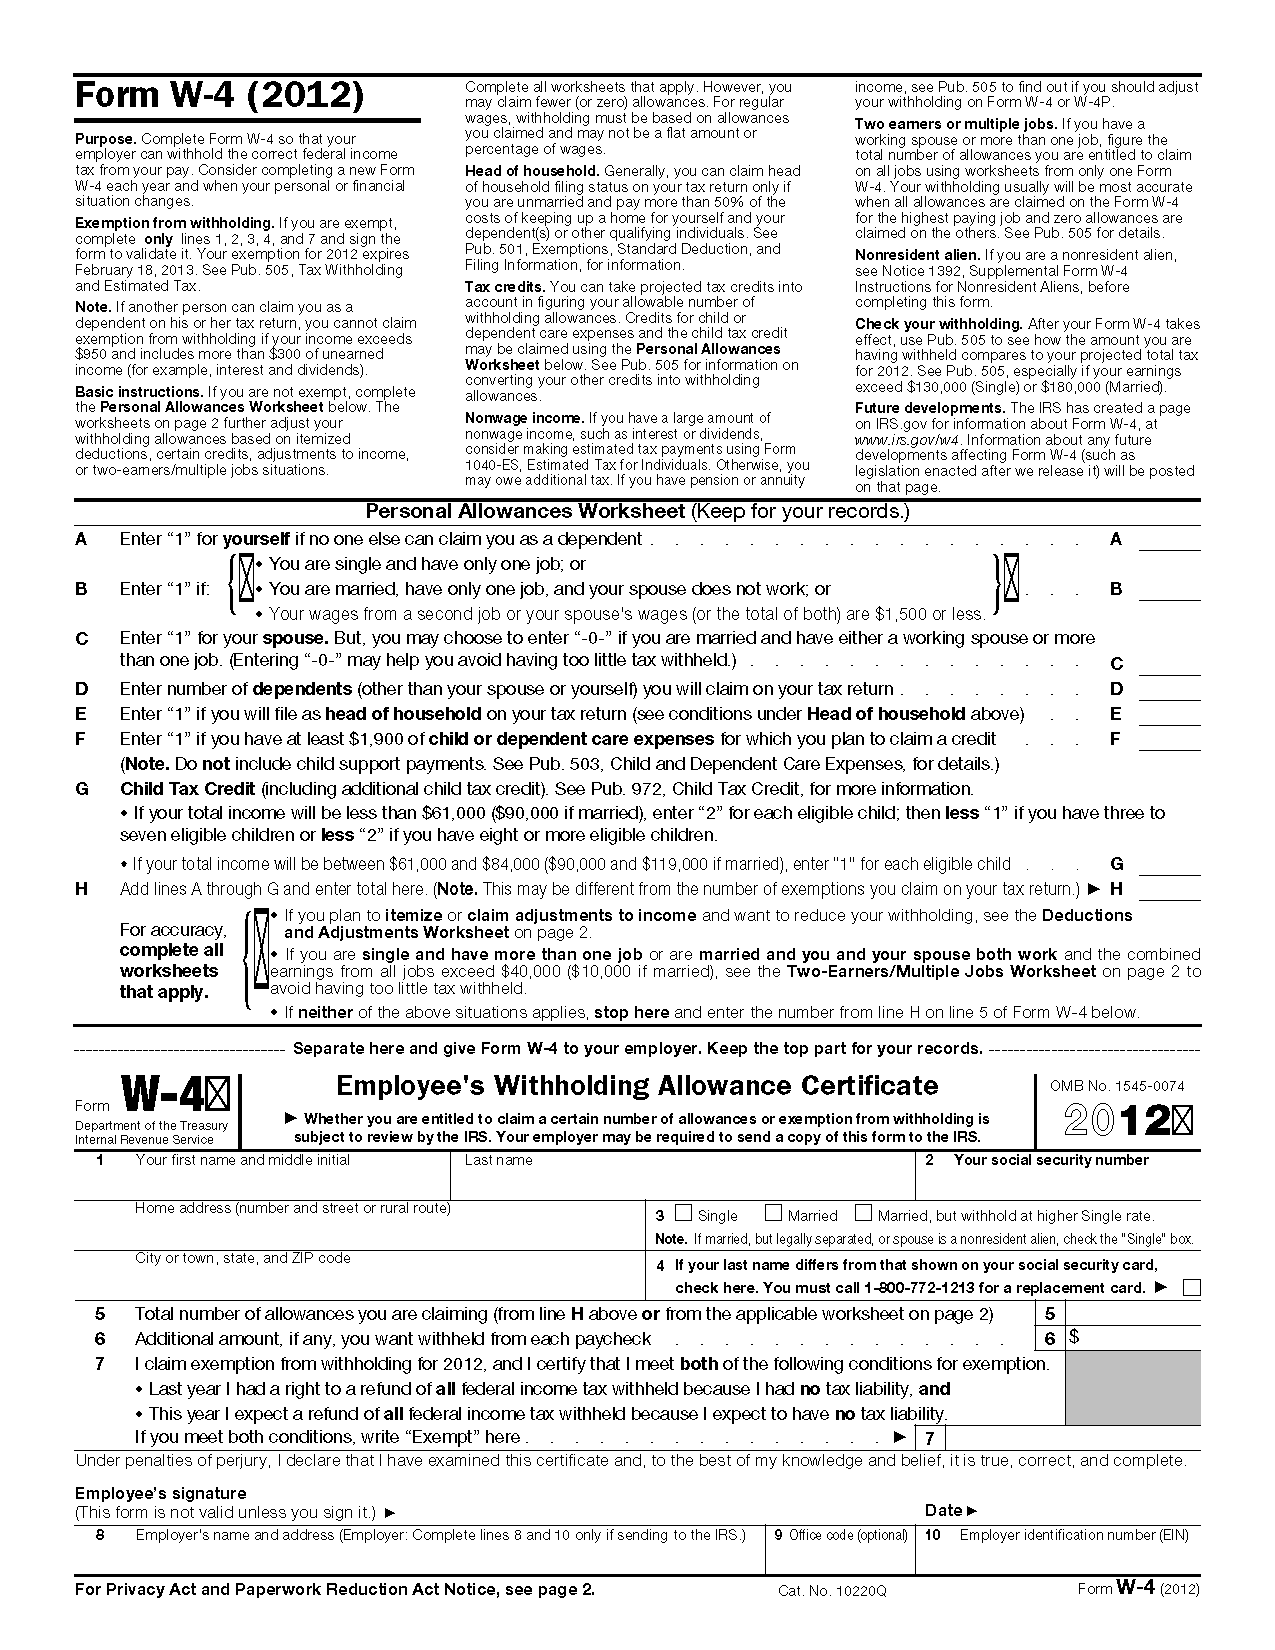 Allowance Worksheet Furthermore W 4 Allowances 2016